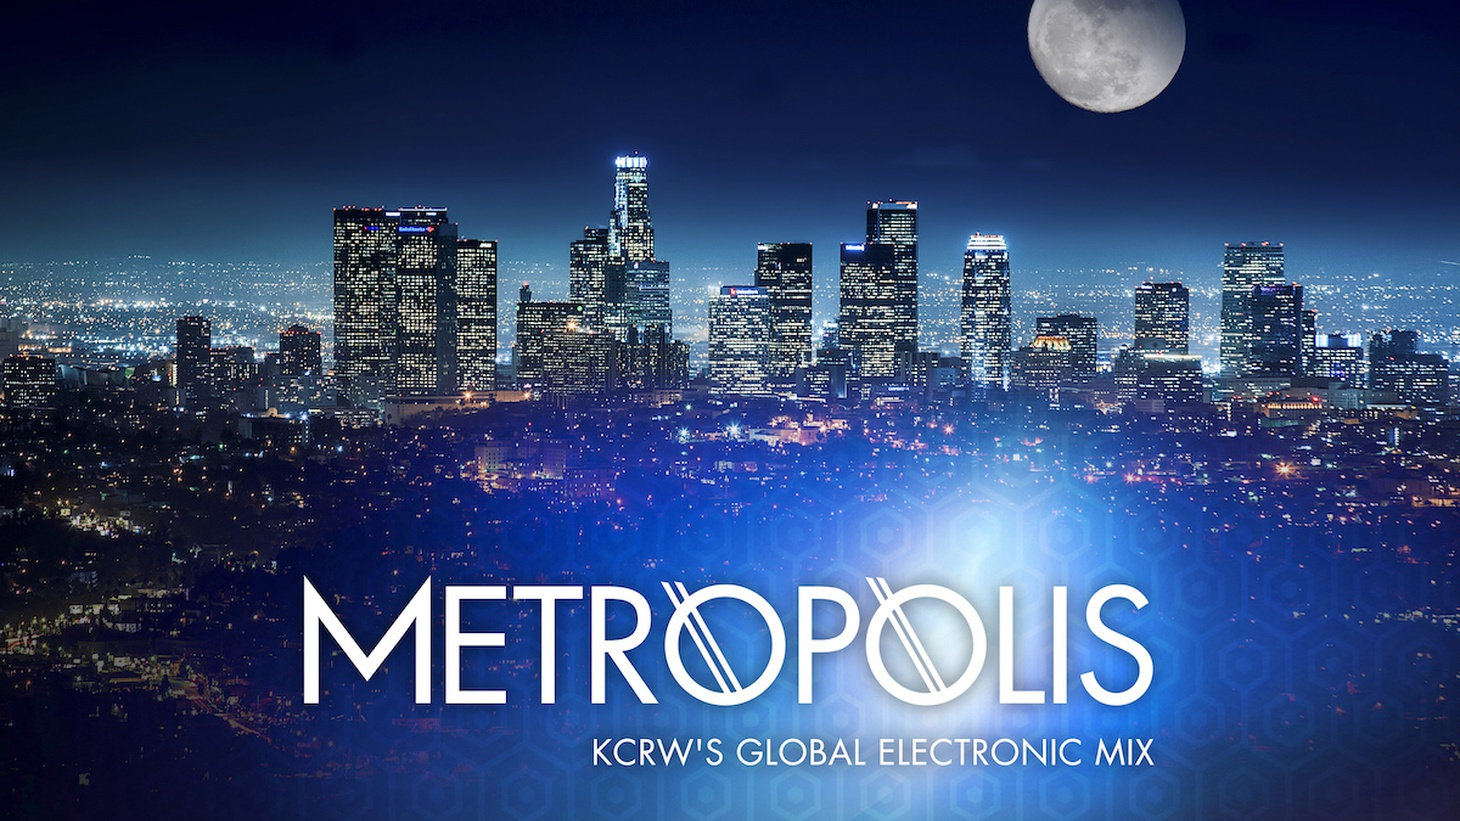 This special edition of Metropolis is a 2 hour sampling of our KCRWmusic.com stream.